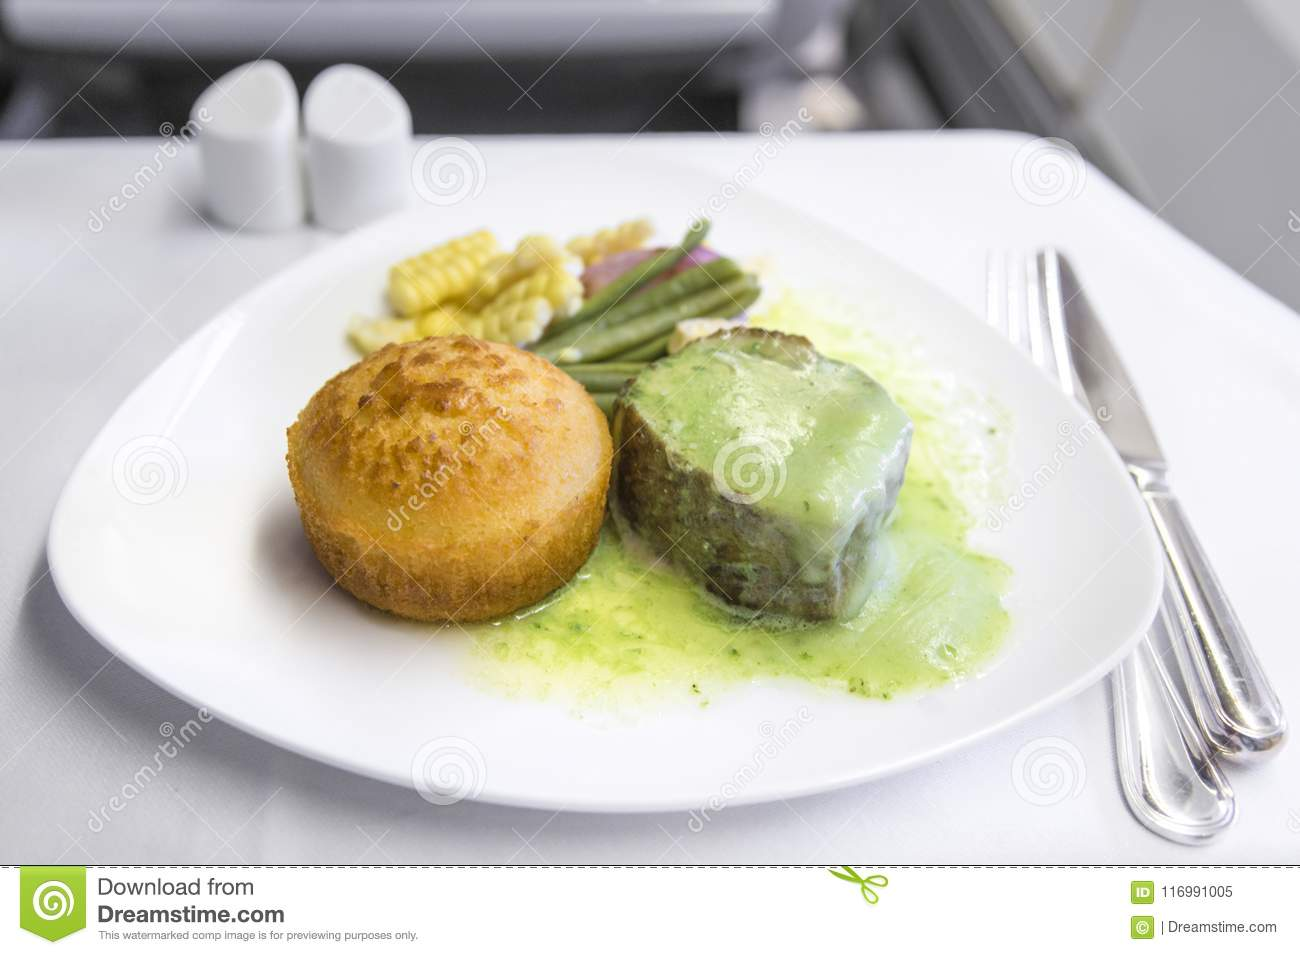 Set inflight meal steak on a tray, on a white table